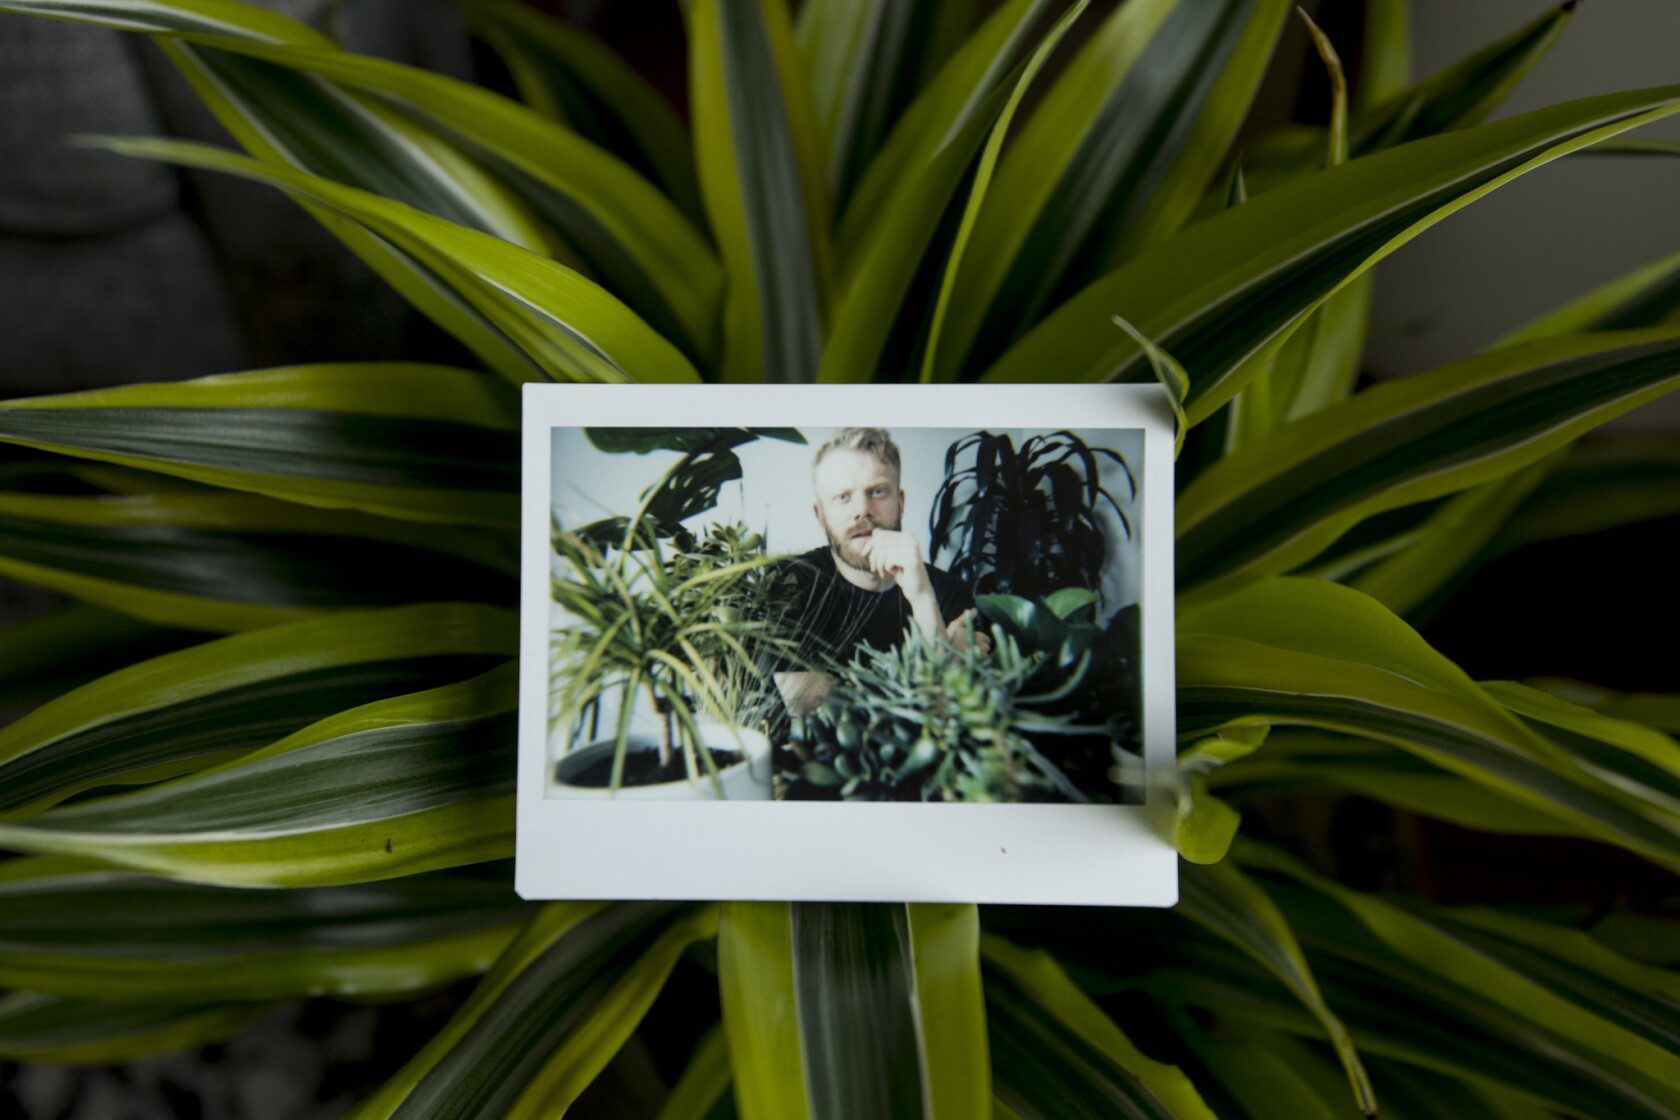 Must Reads: They don't own homes. They don't have kids. Why millennials are plant addicts